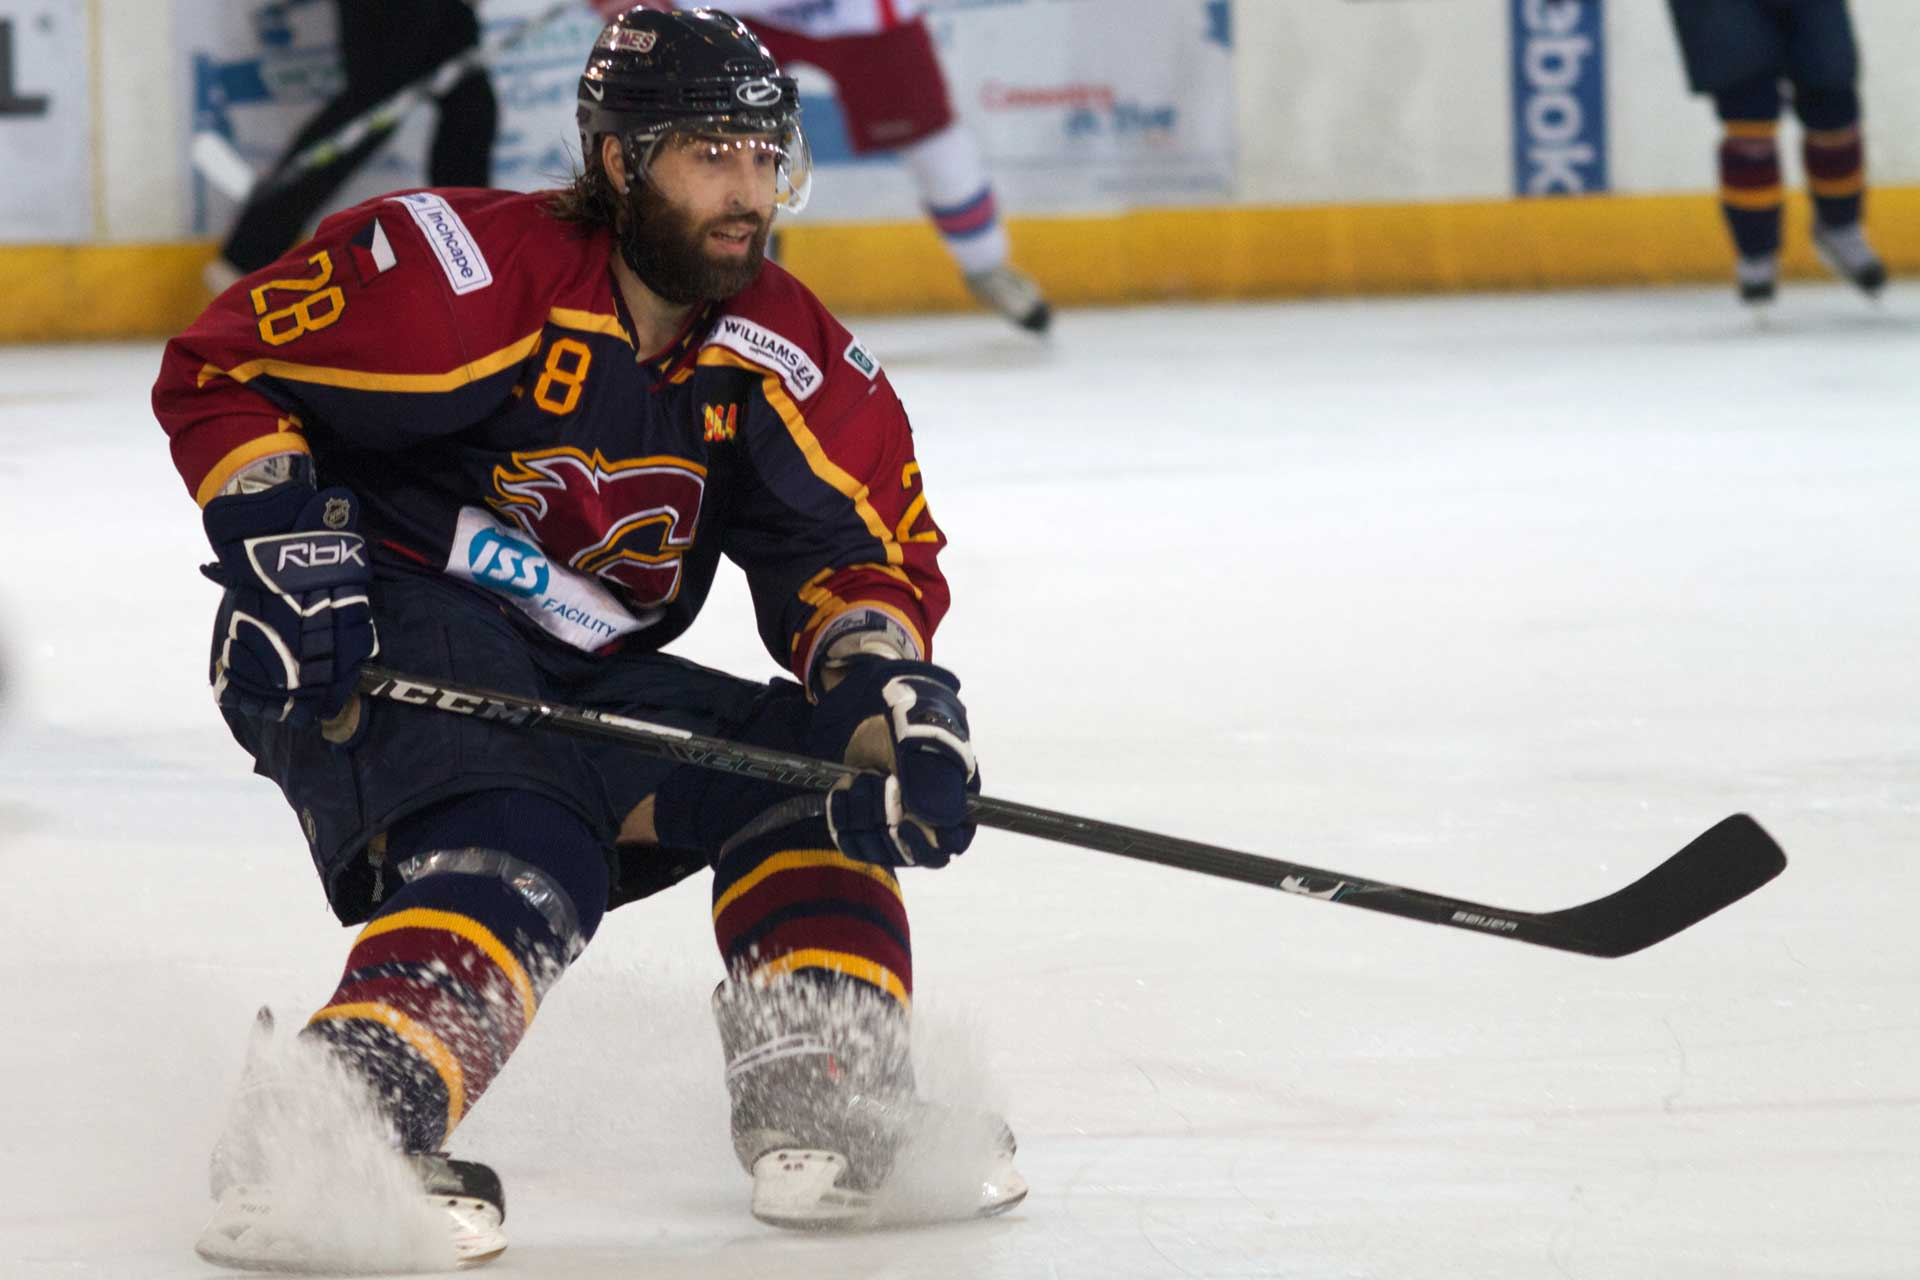 Guildford Flames - Hi-Spec Electrics are corporate sponsors to the Guildford Flames Ice Hockey Team. Corporate sponsorship gives us the opportunity to give something back to the local community, and support sport in the area.